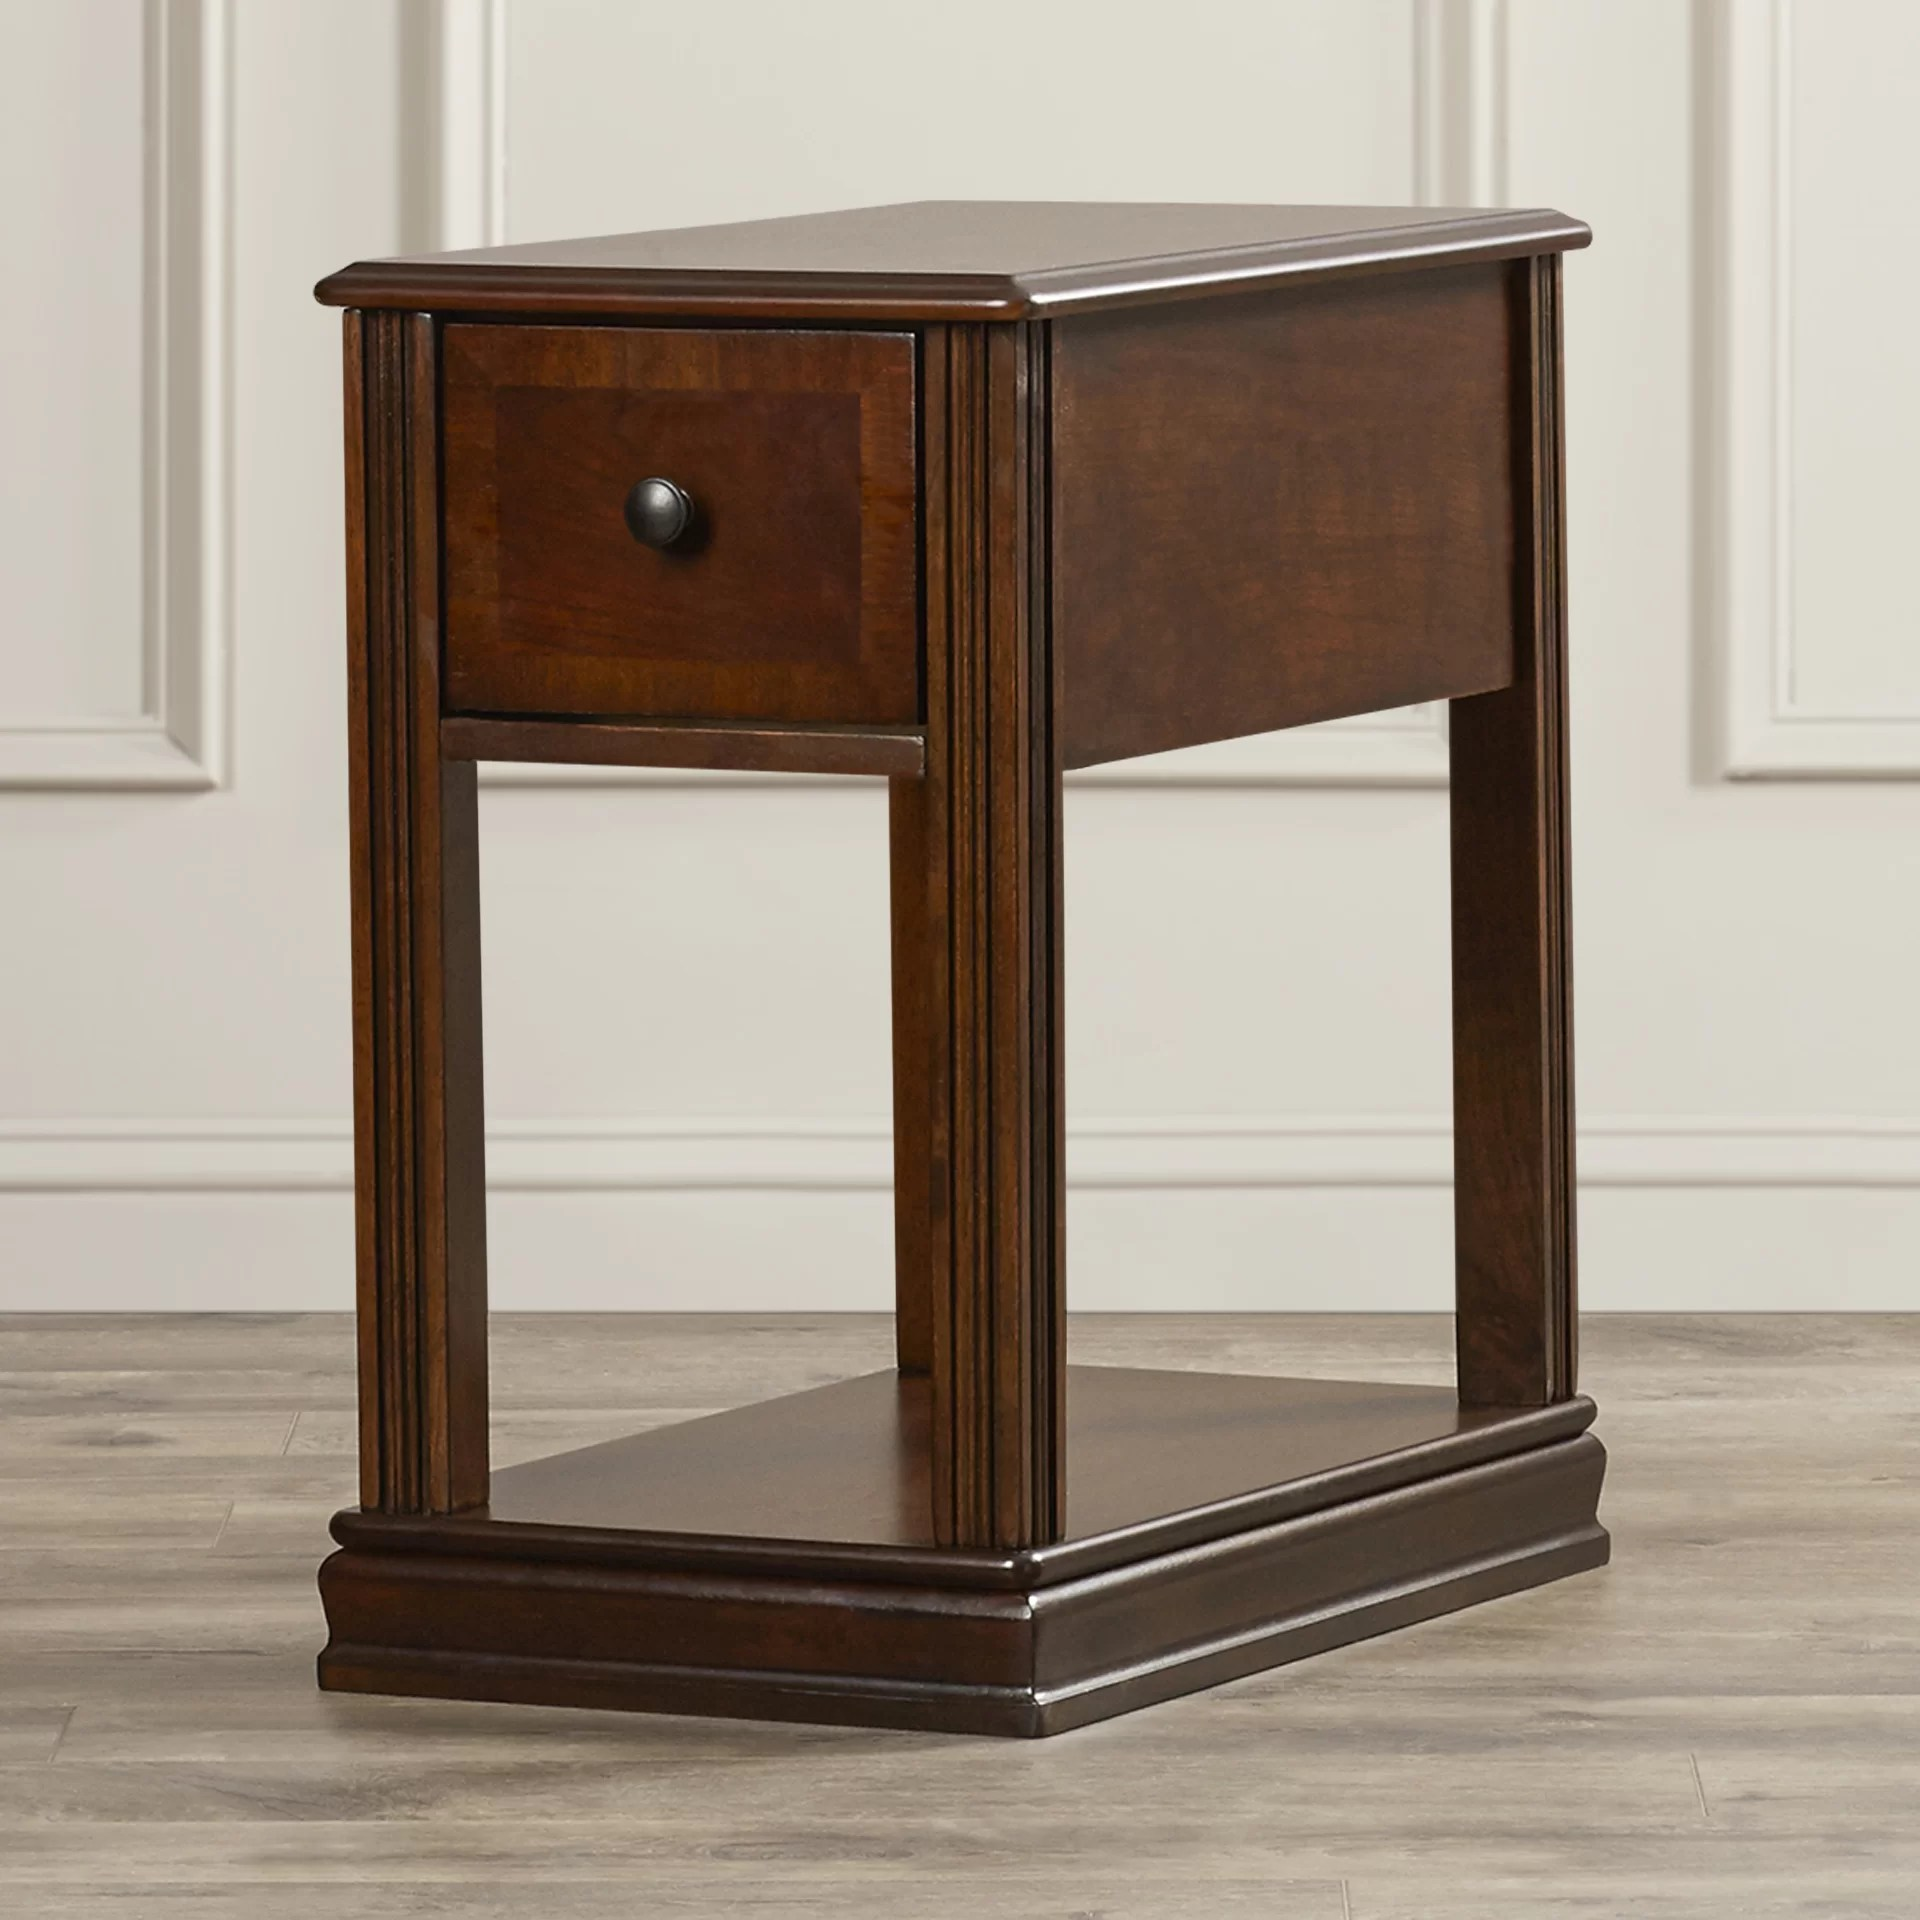 Chair Side Table Darby Home Co Busse Chairside Table And Reviews Wayfair